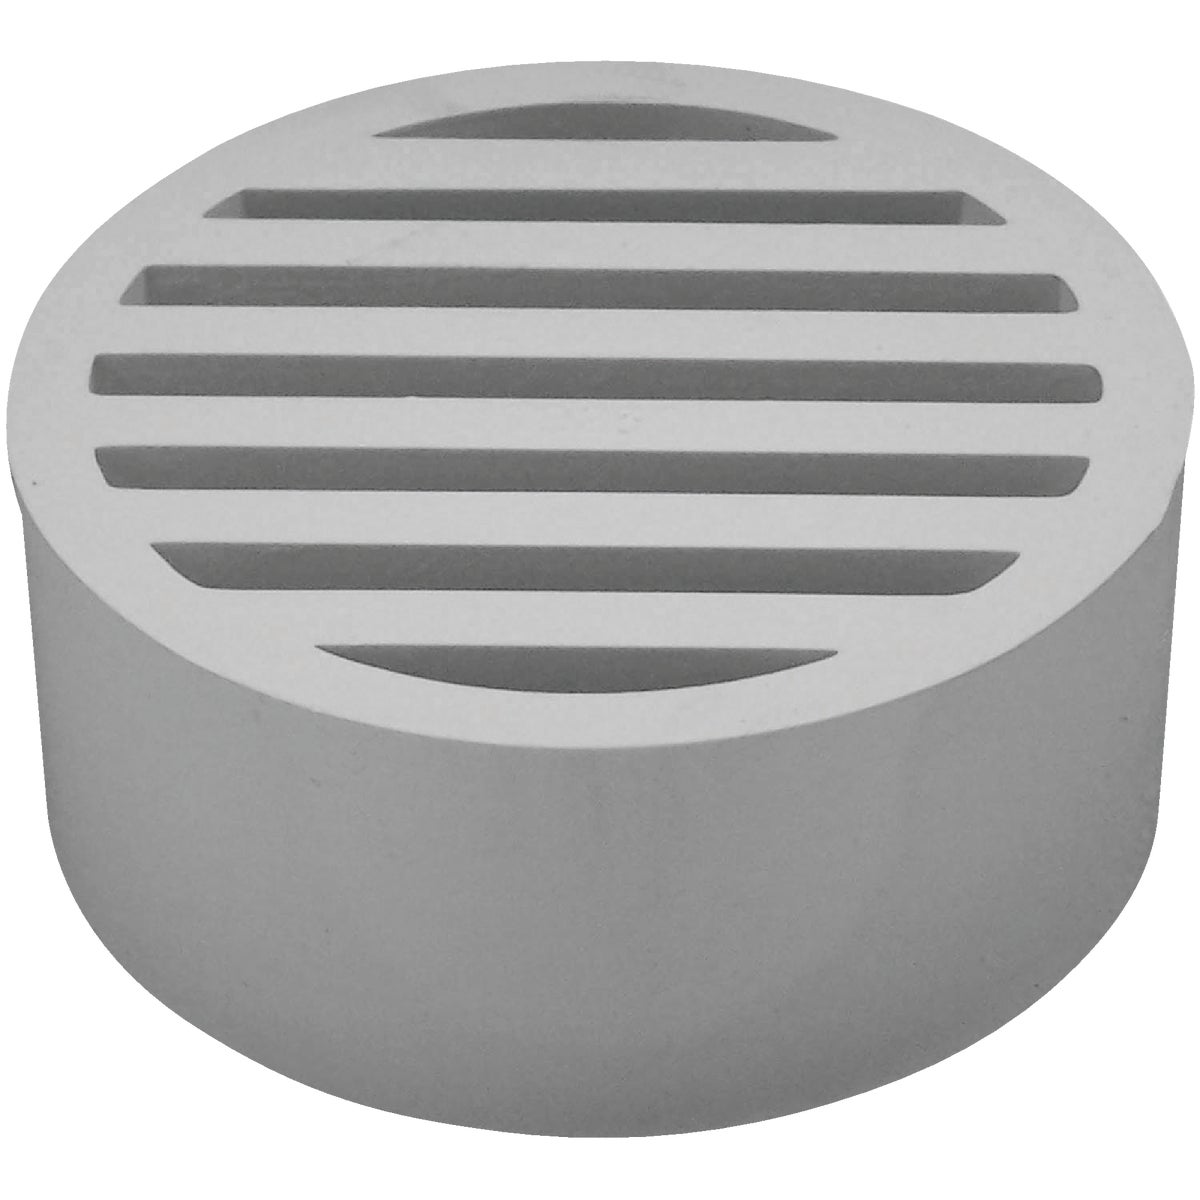 "4""PVC-DWV FLOOR STRAINER - 79240 by Genova Inc  Pvc Dwv"